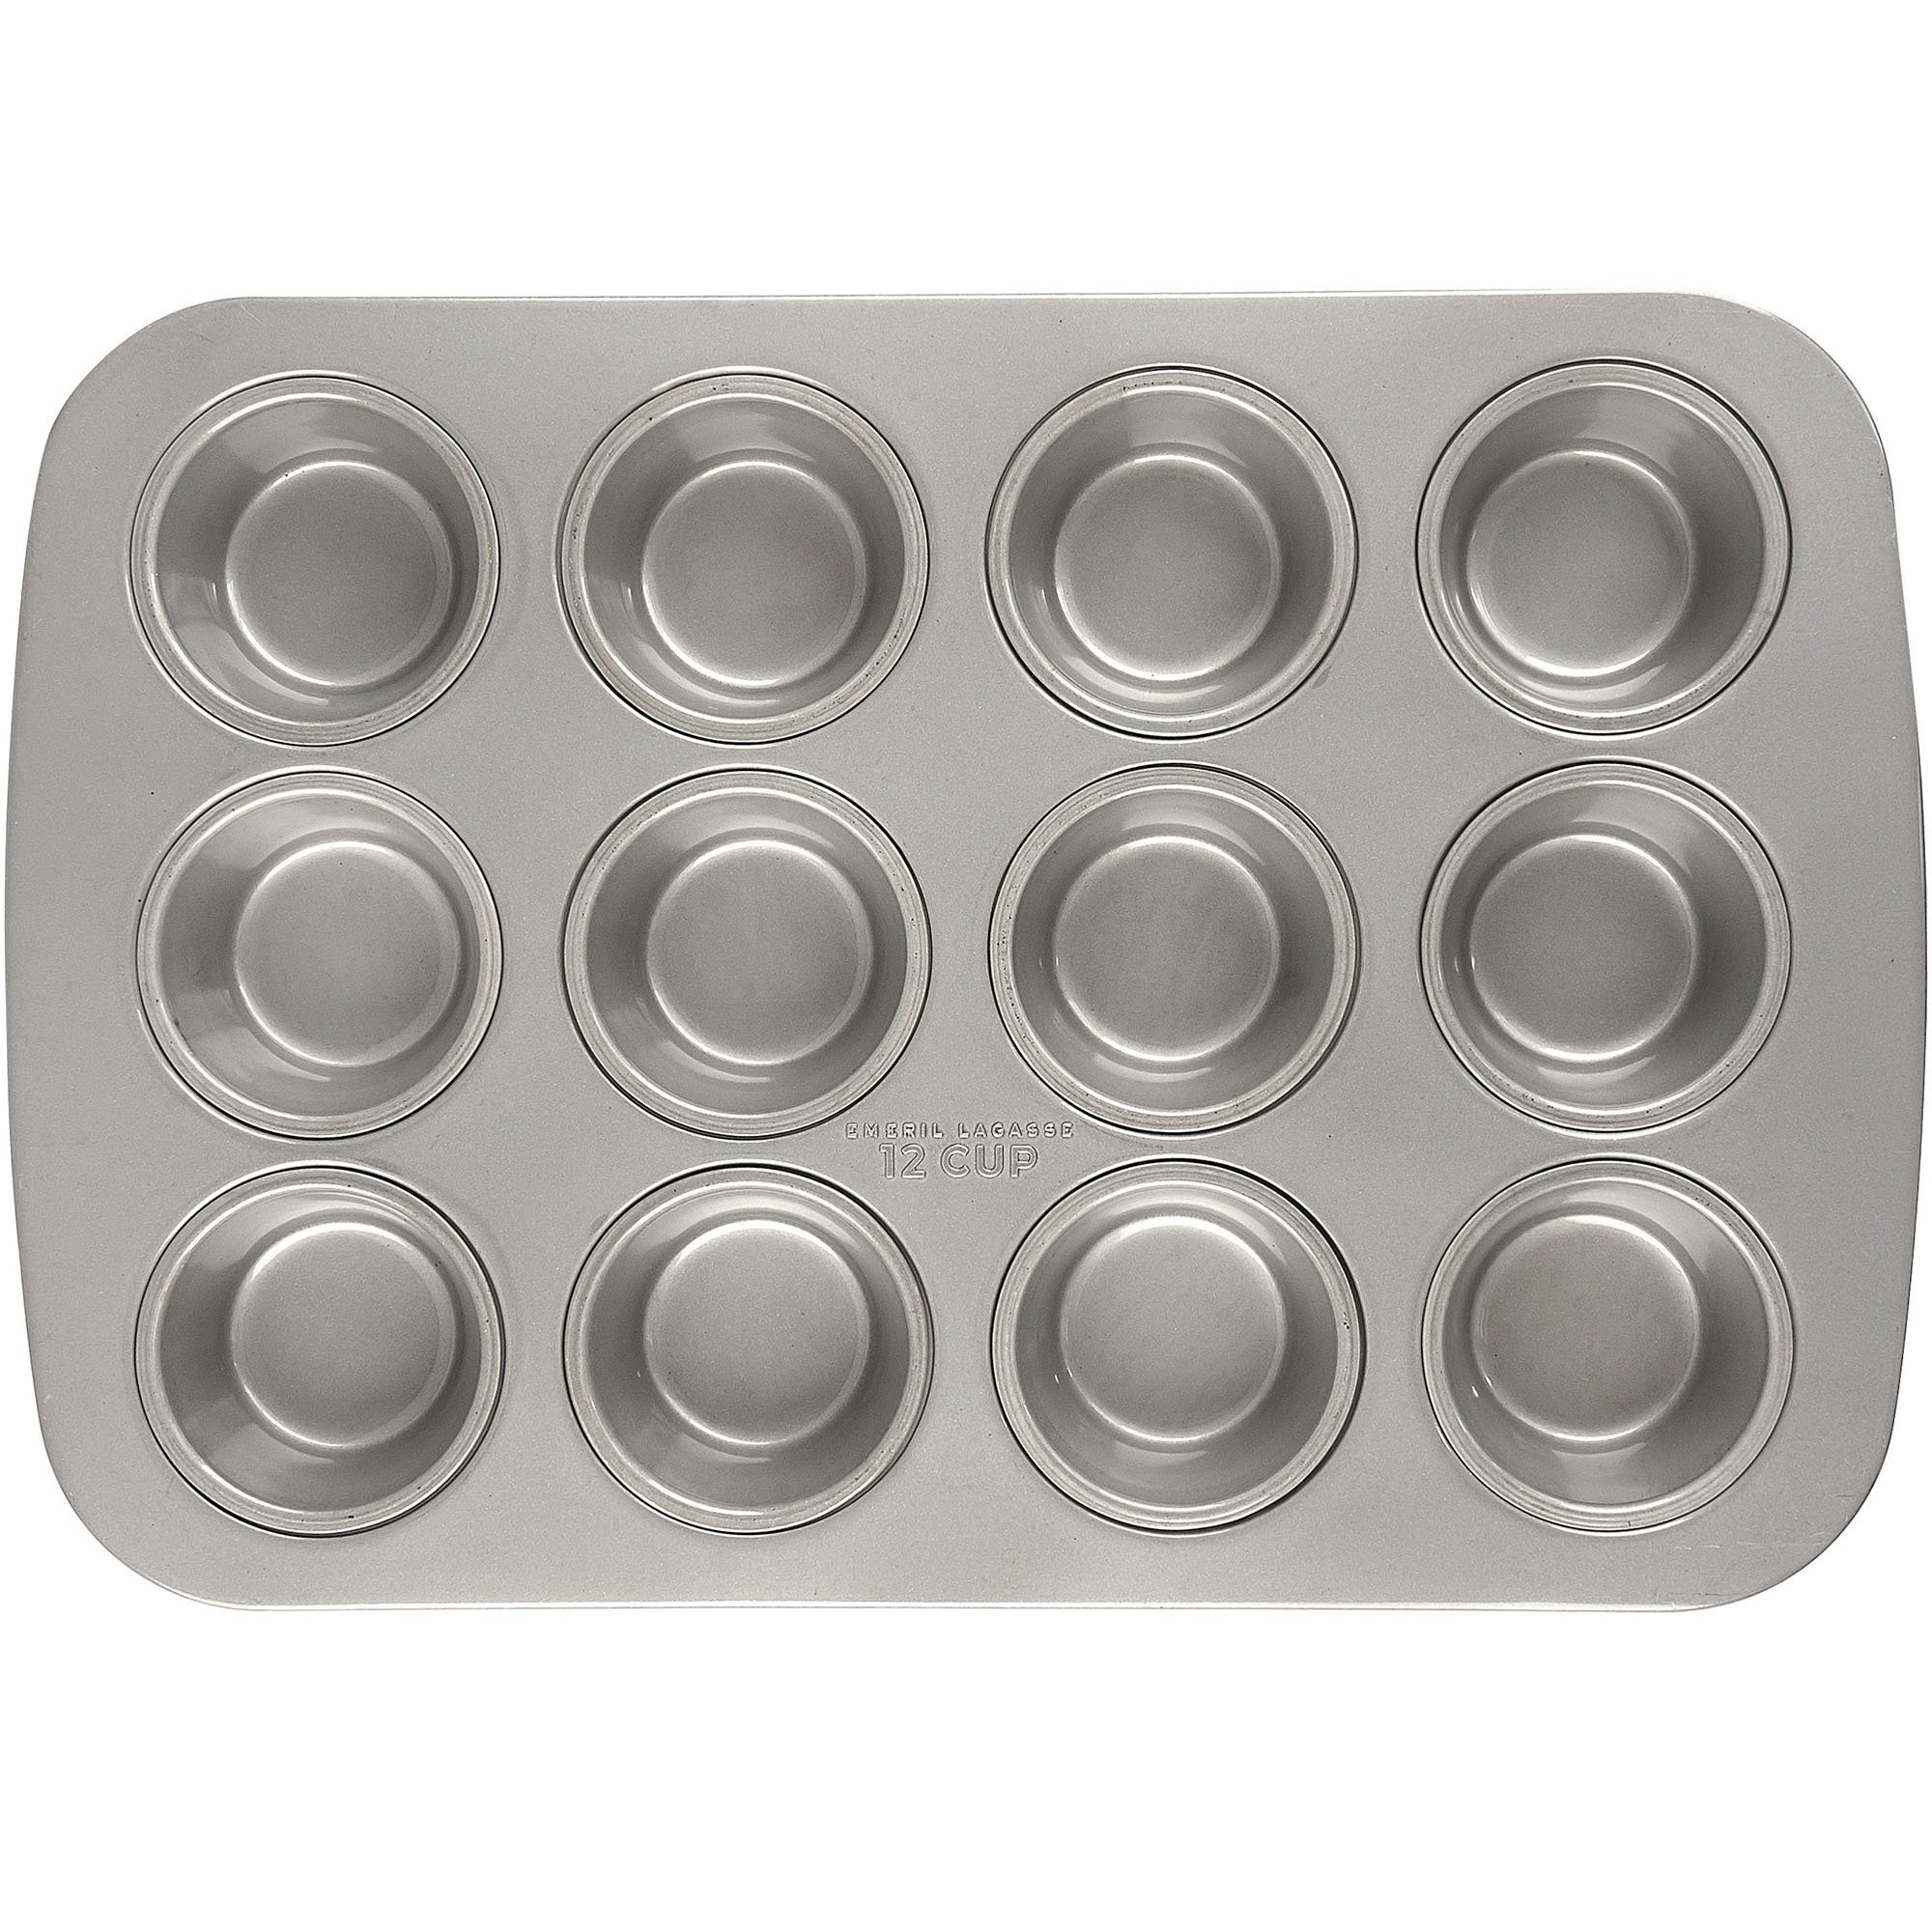 Emeril Lagasse 62675 Aluminized Steel Nonstick 12-Cup Muffin Pan by Emeril Lagasse (Image #2)